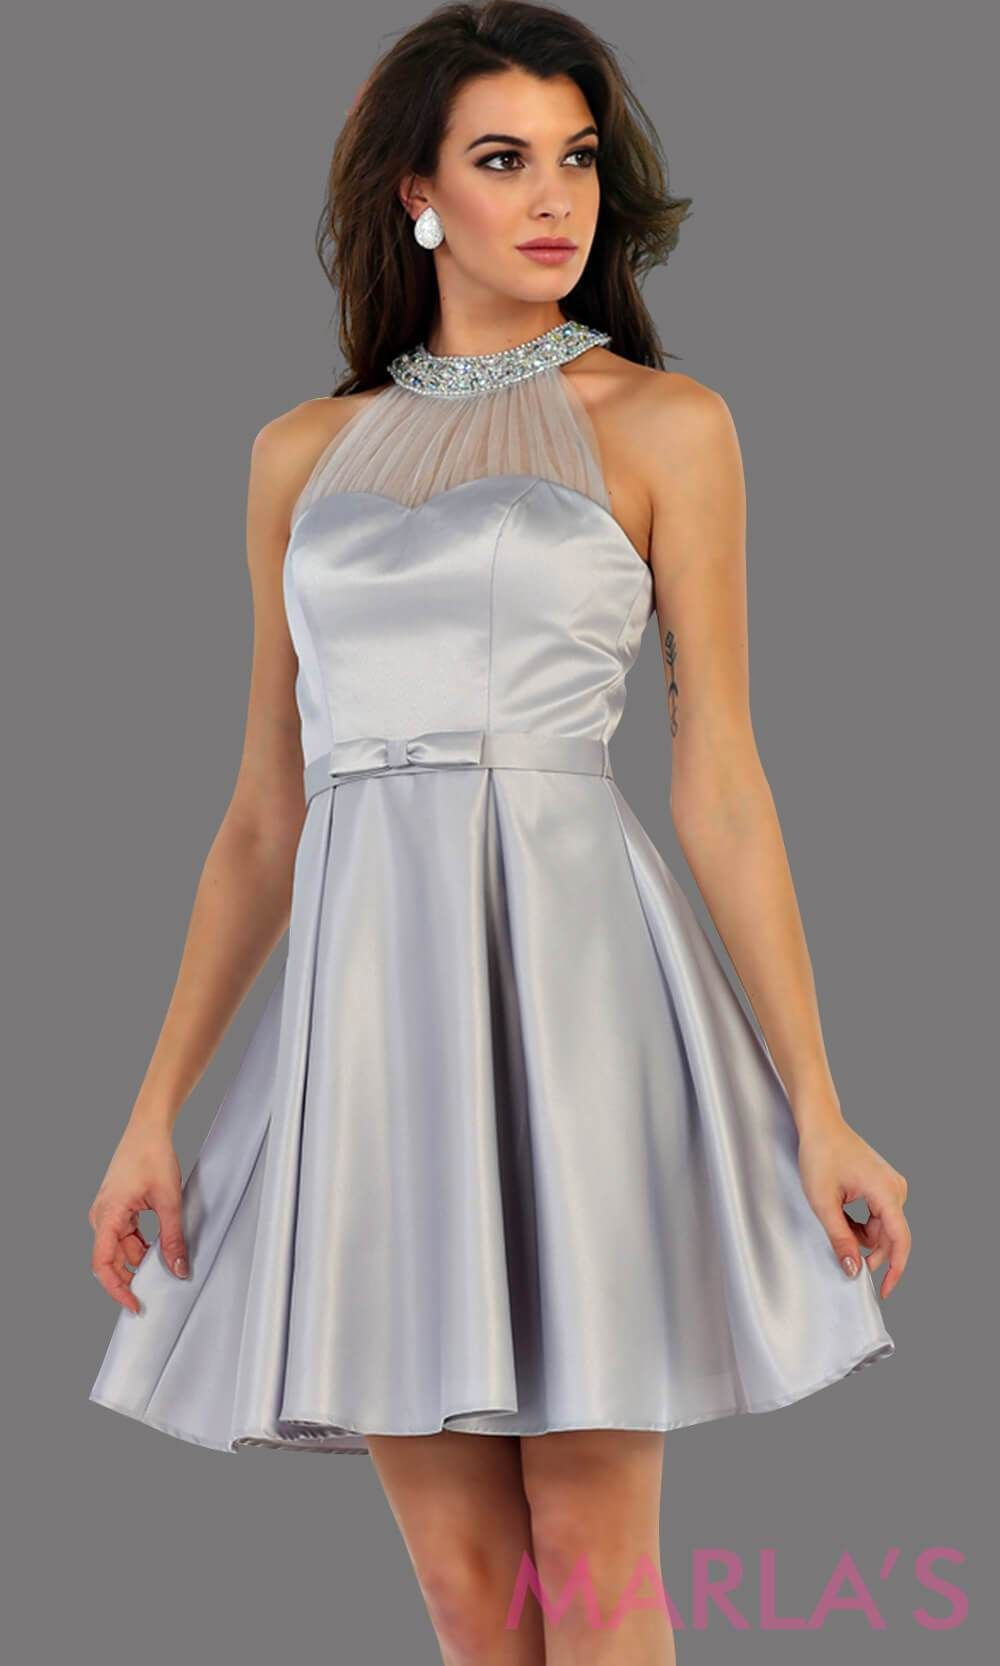 854f149355b 1474-Short high neck taffeta gray grade 8 grad dress with rhinestone  neckline. Perfect as a silver confirmation dress